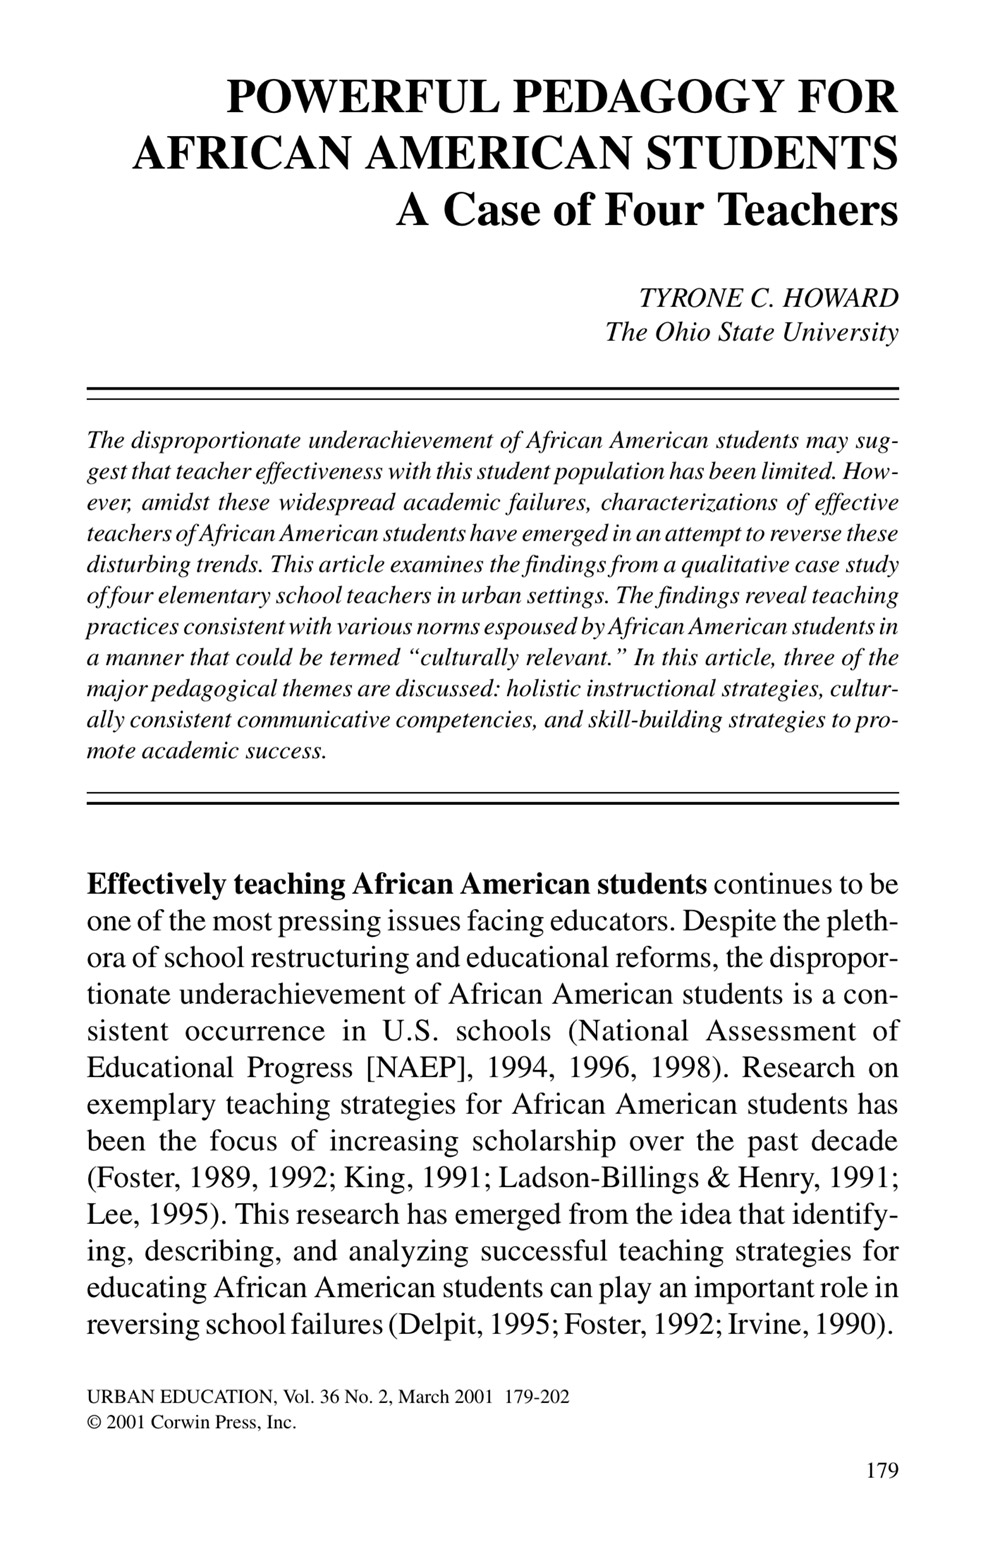 Powerful Pedagogy for African American Students